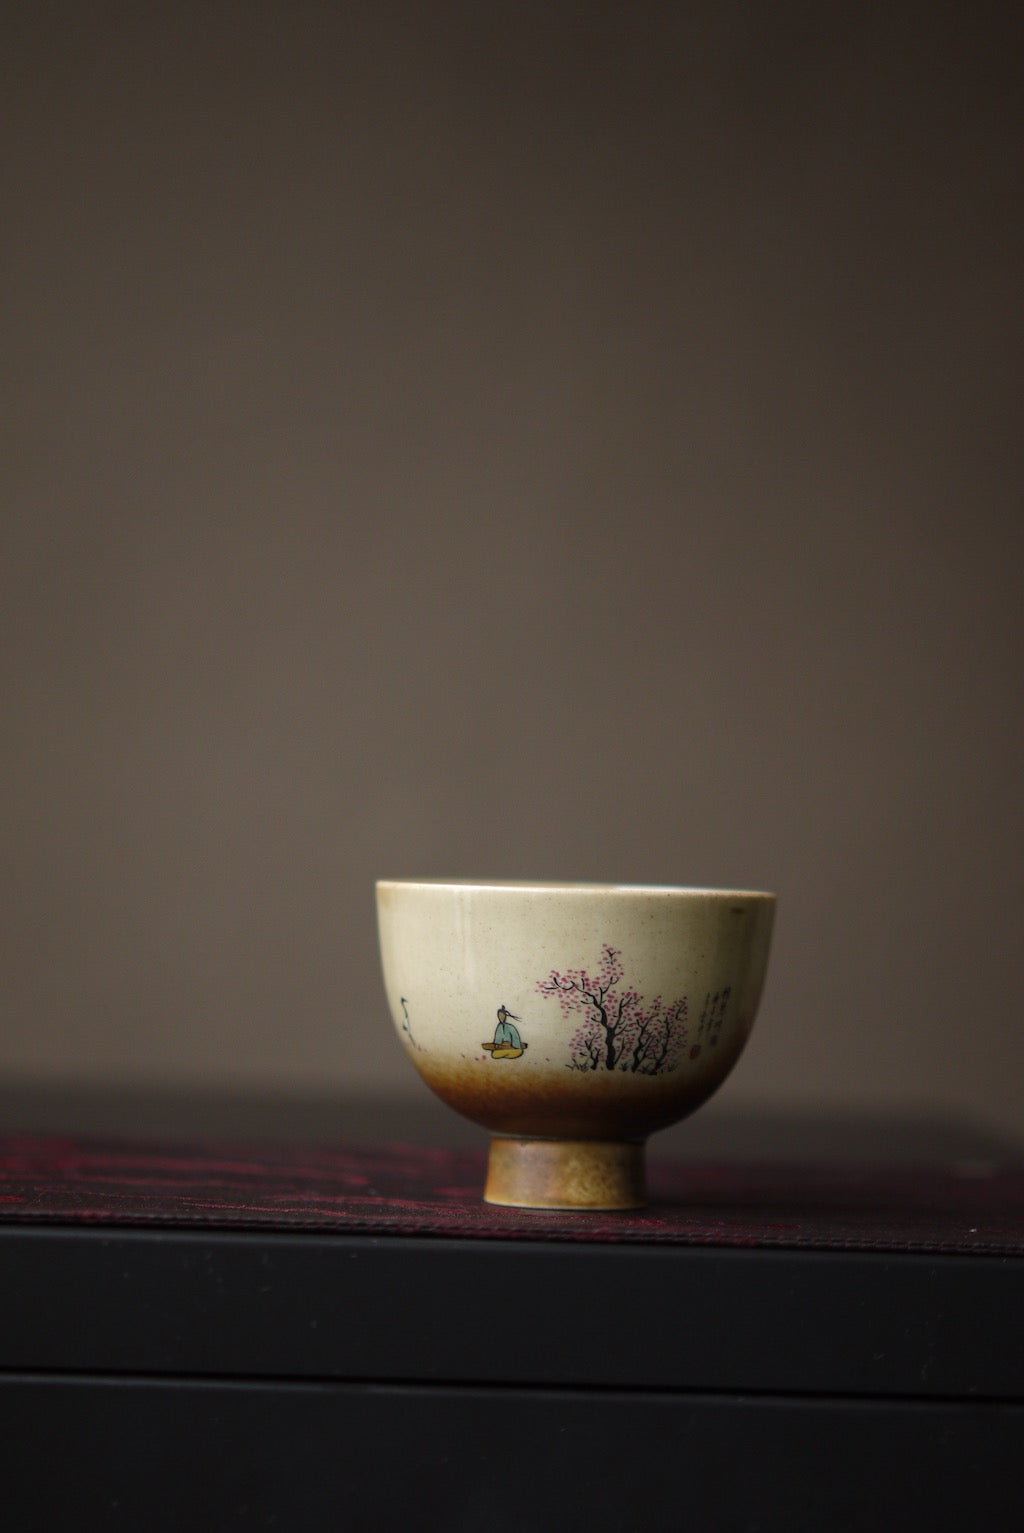 Chinese Hand-Painted Landscape Gongfu Ceramic Teacup|Best Ceramics